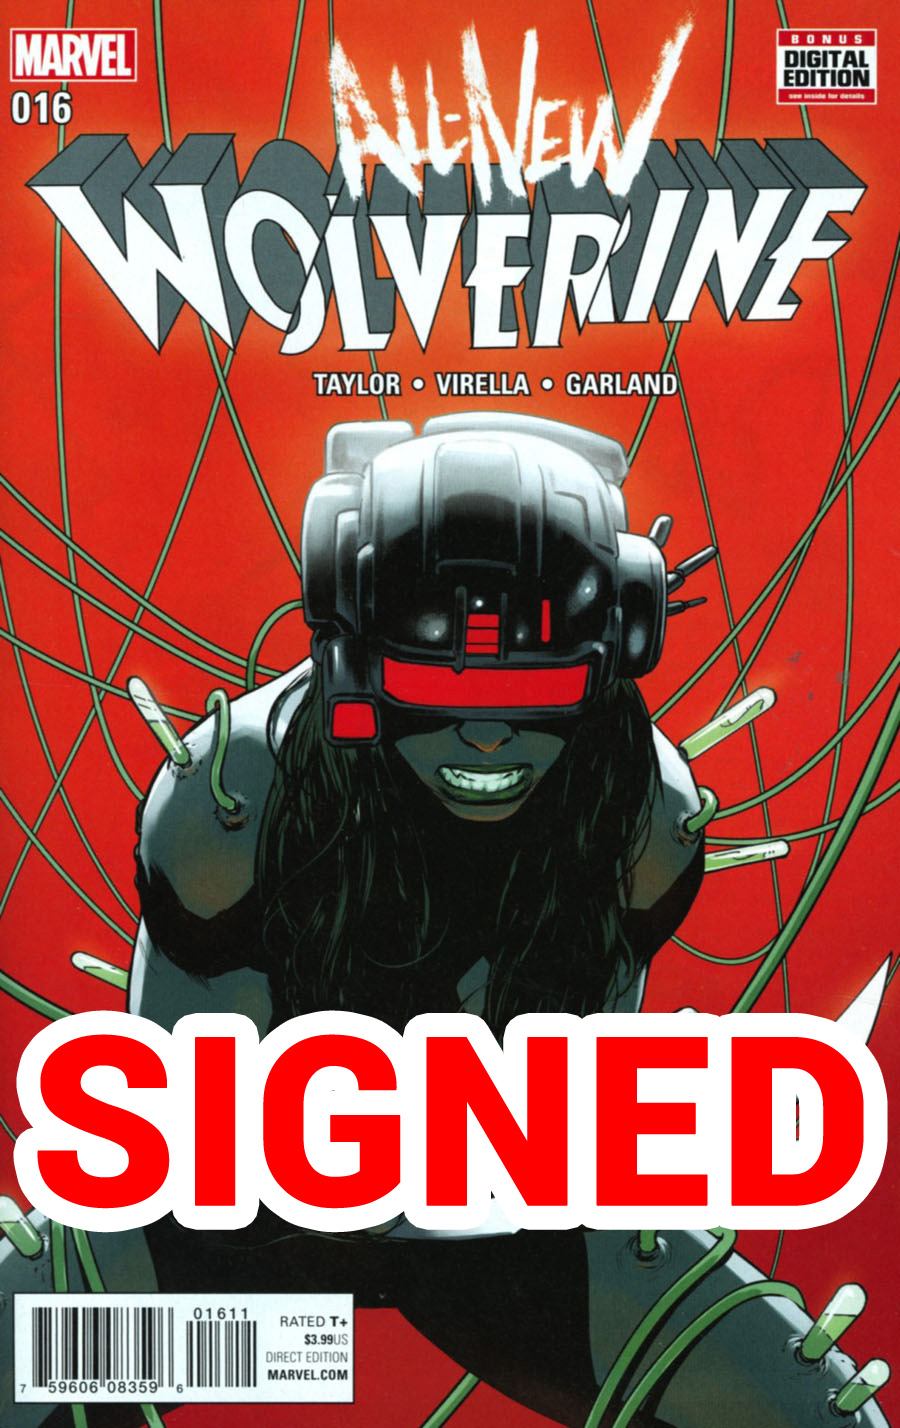 All-New Wolverine #16 Cover C Regular David Lopez Cover Signed By Nik Virella (Limit 1 Per Customer)